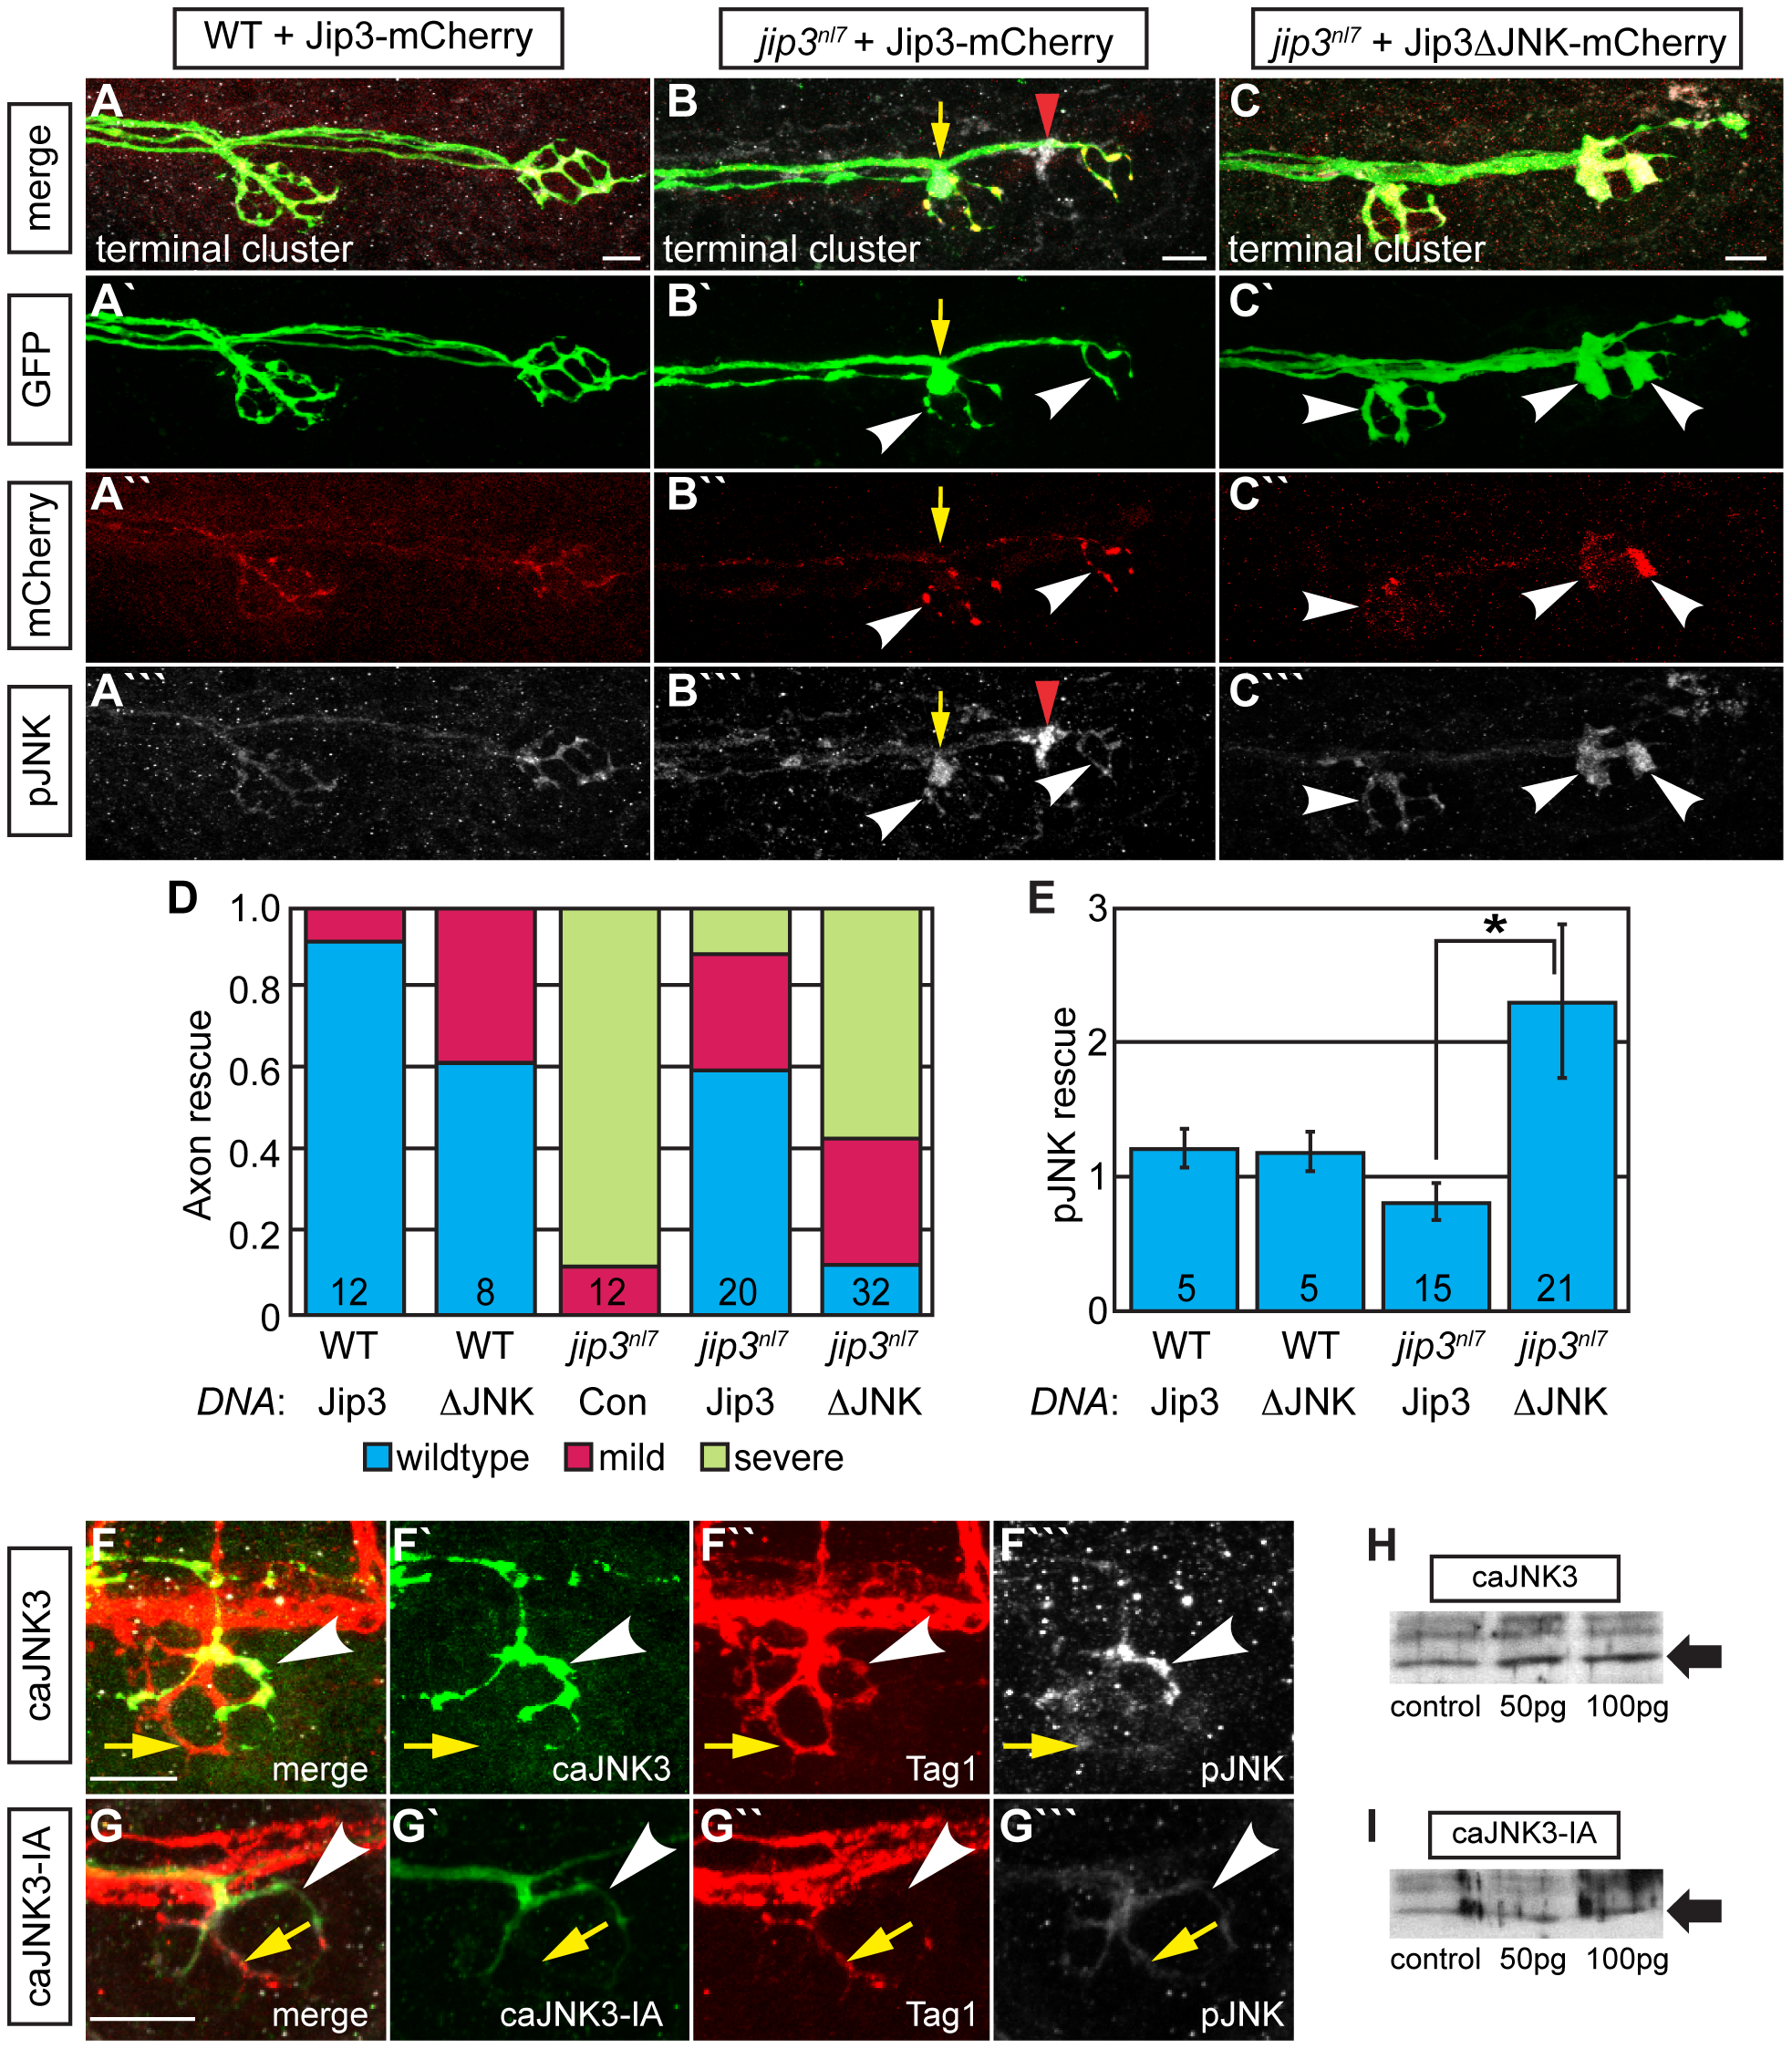 Jip3 interaction with JNK was necessary for pJNK clearance and the prevention of axon swellings.